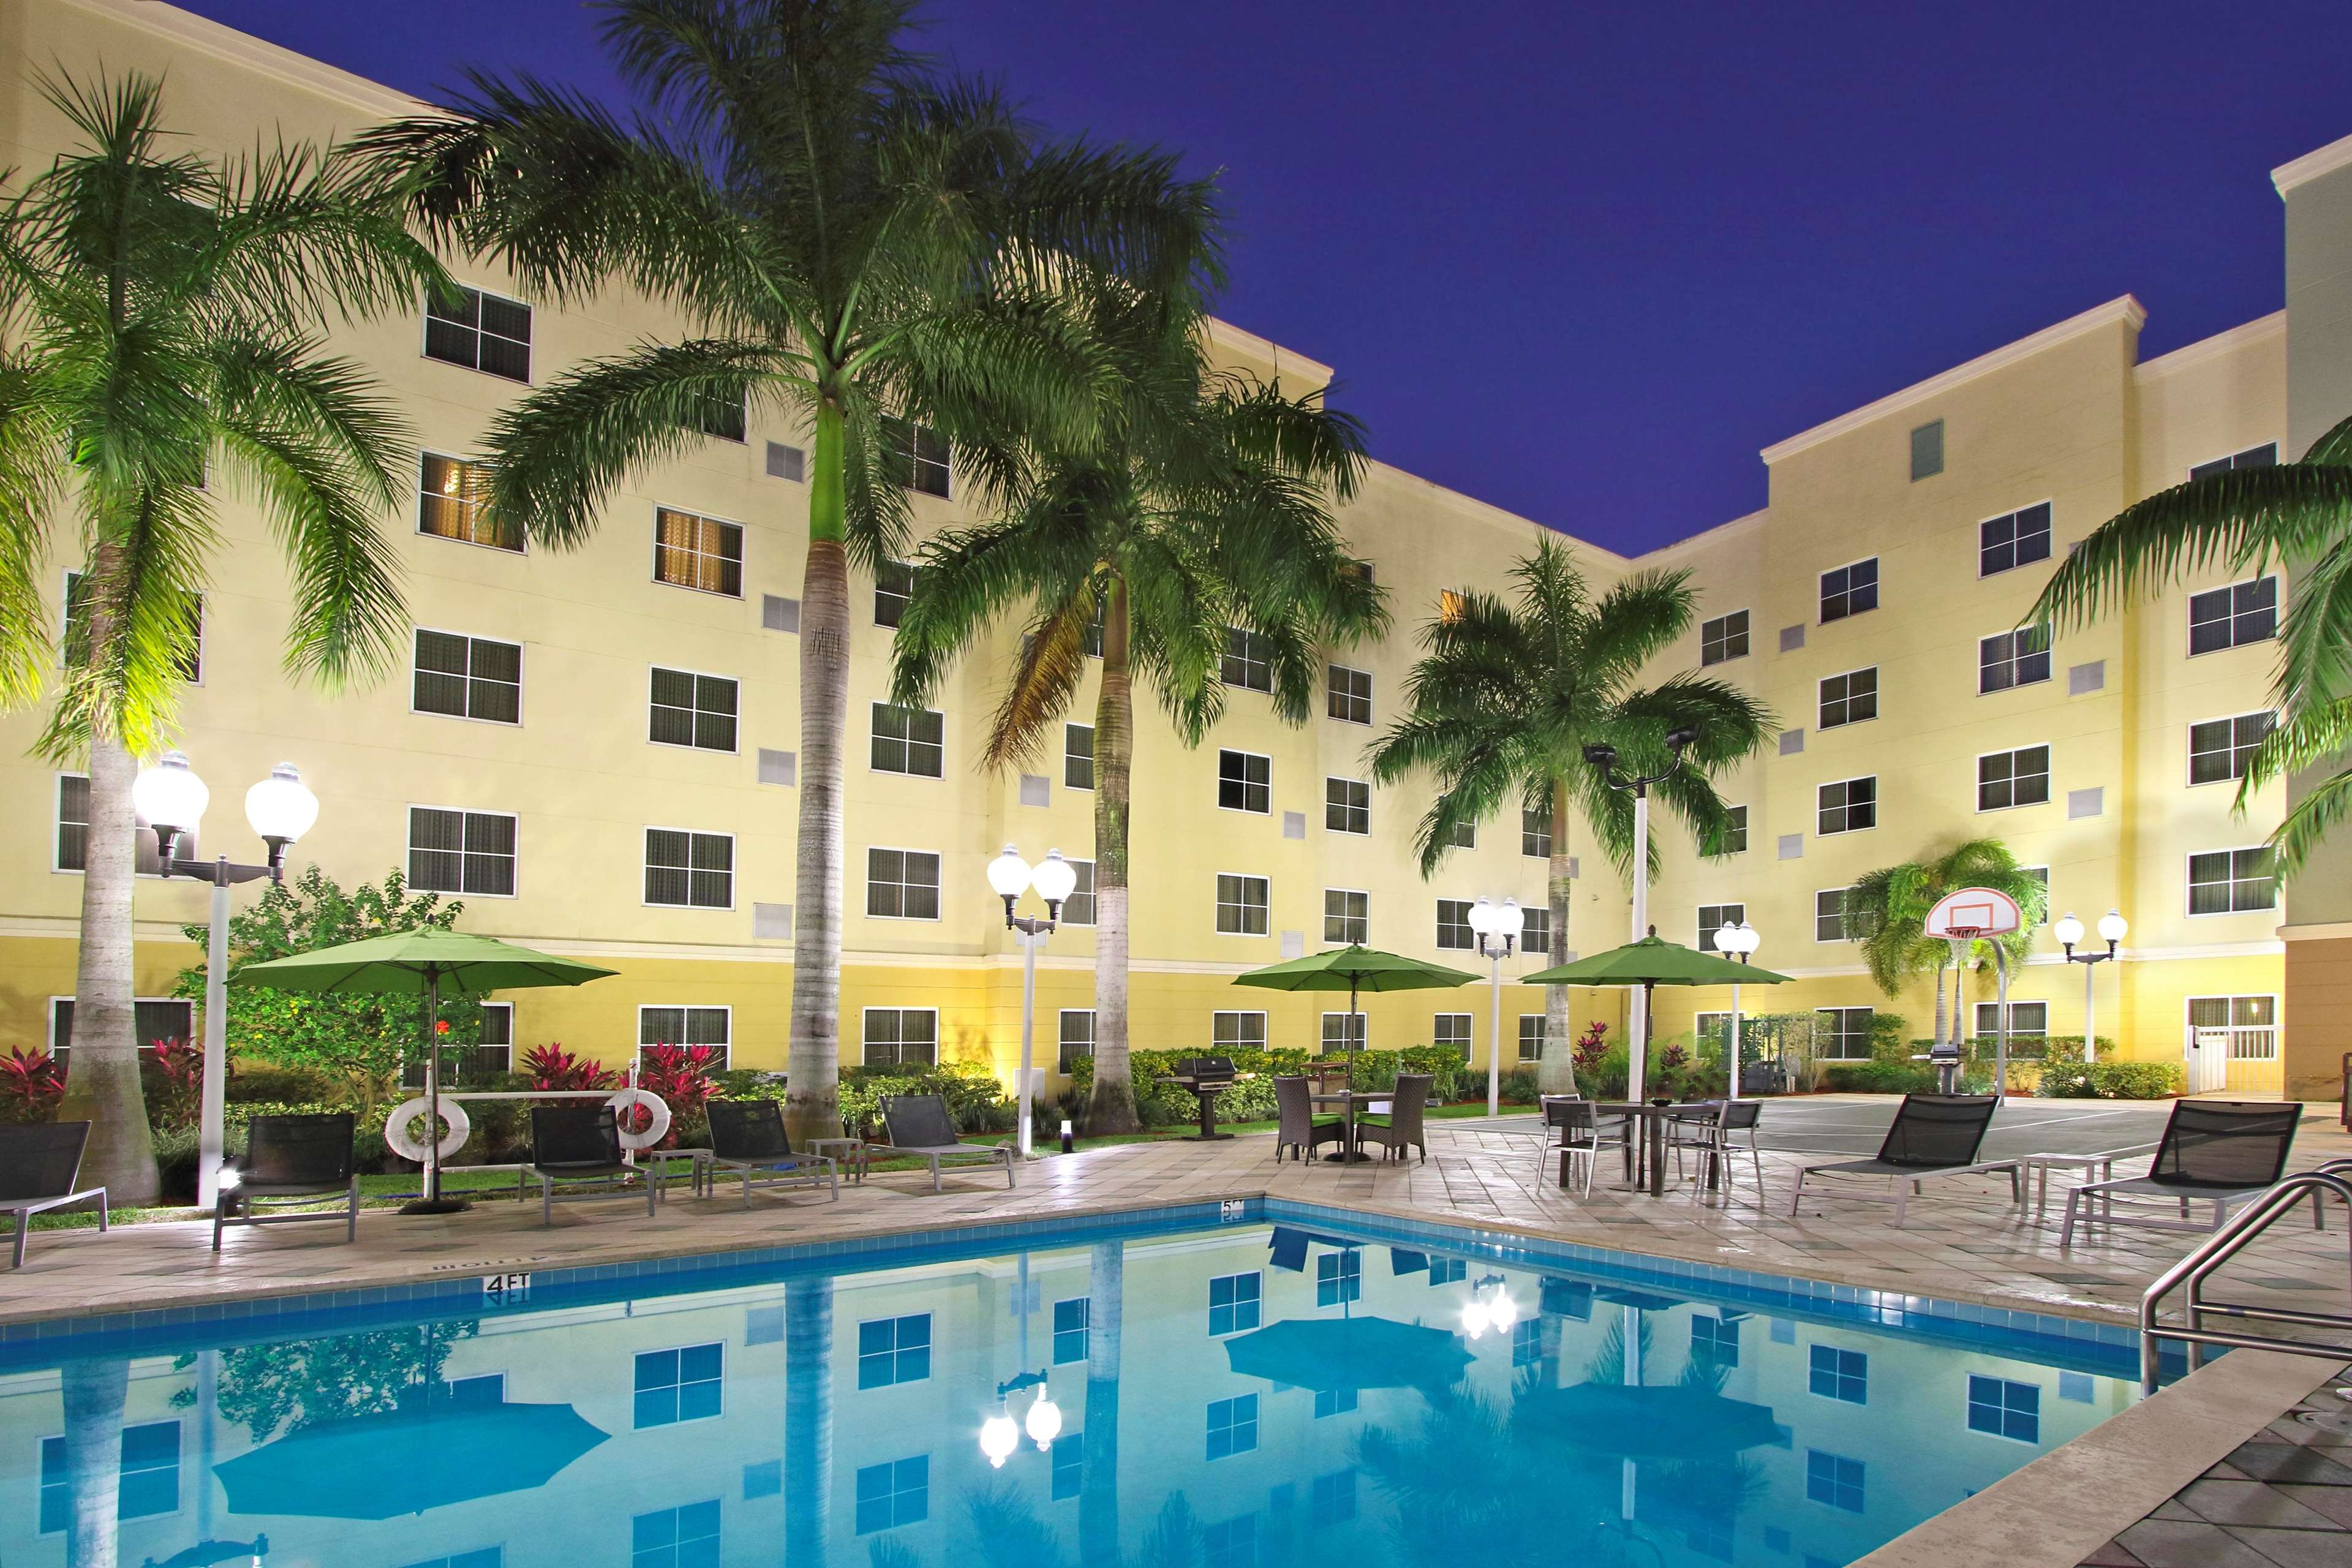 Homewood Suites by Hilton Miami - Airport West image 19